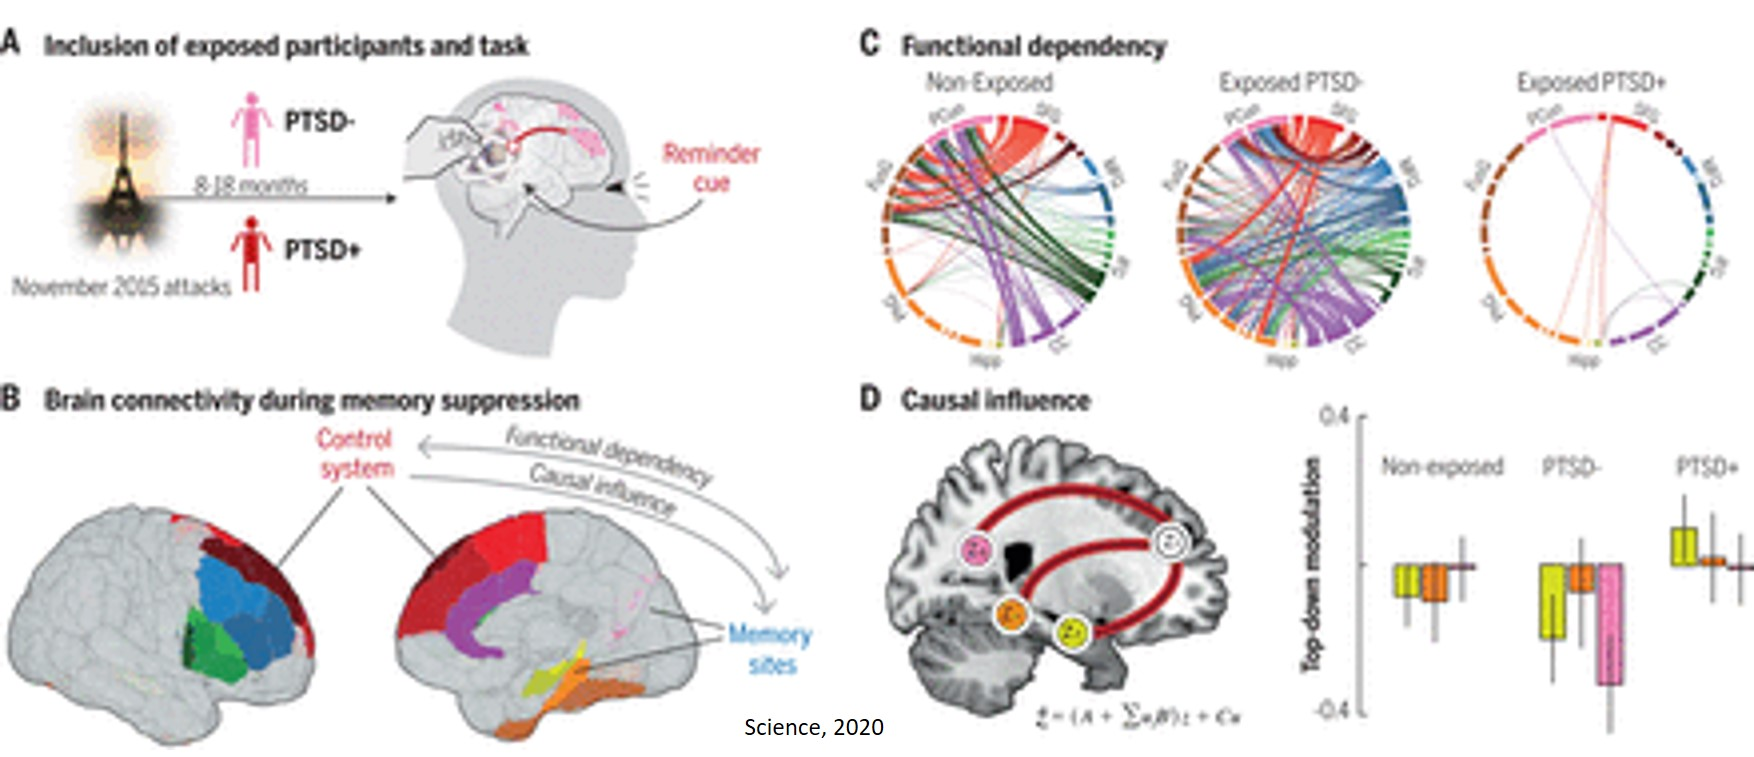 Memory suppression is implicated in resilience after trauma